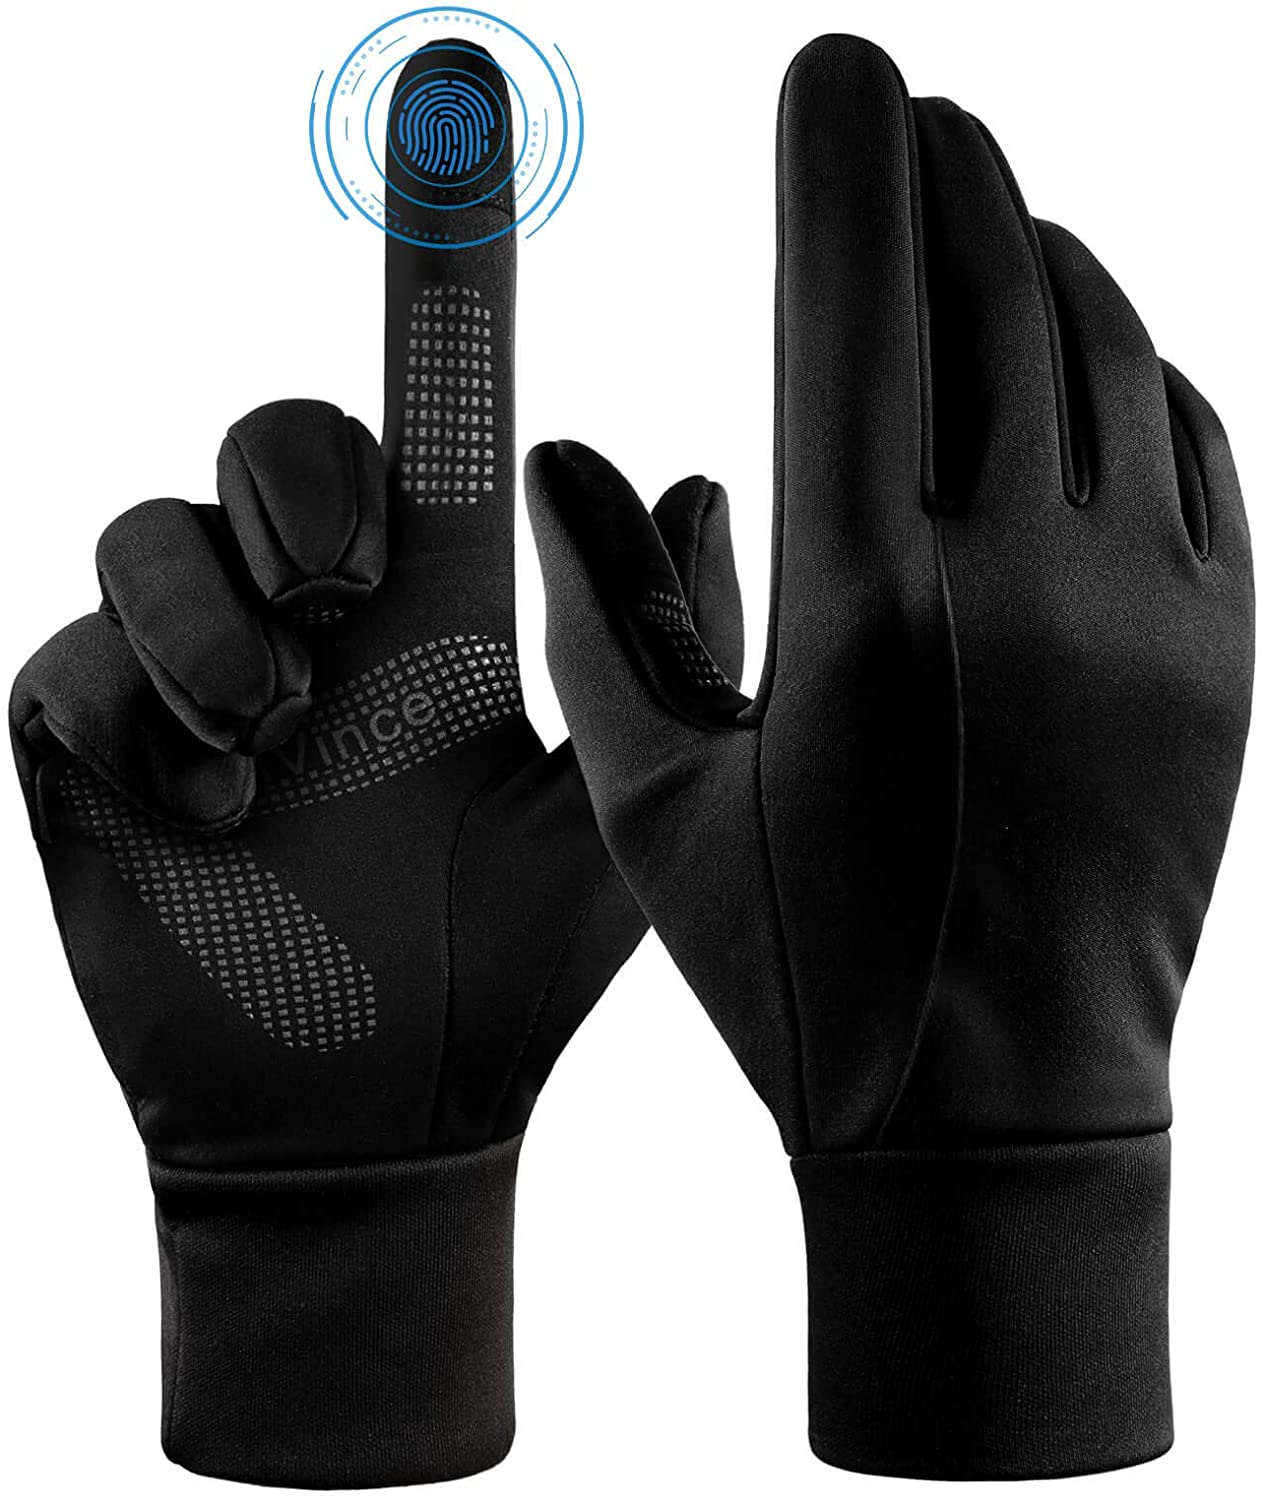 Winter Gloves Touch Screen Water Resistant Thermal Glove for Running Cycling Driving Phone Texting Outdoor Hiking Windproof Warm Gifts for Men and Women